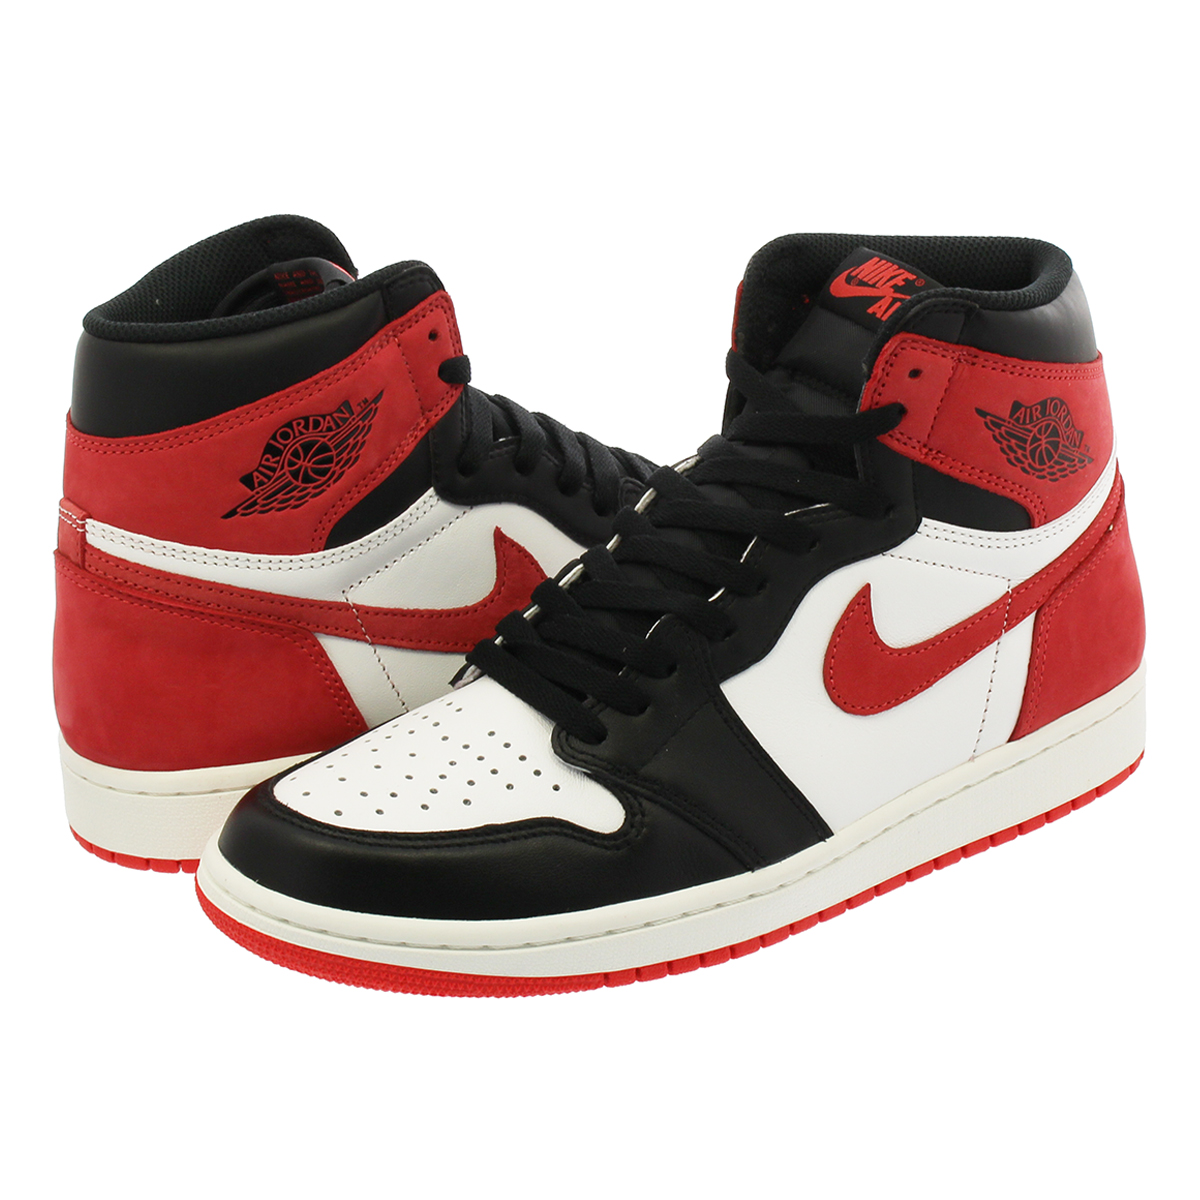 NIKE AIR JORDAN 1 RETRO HIGH OG 【HAND IN THE GAME COLLECTION】 ナイキ エア ジョーダン 1 レトロ ハイ OG SUMMIT WHITE/BLACK/TRACK RED 555088-112